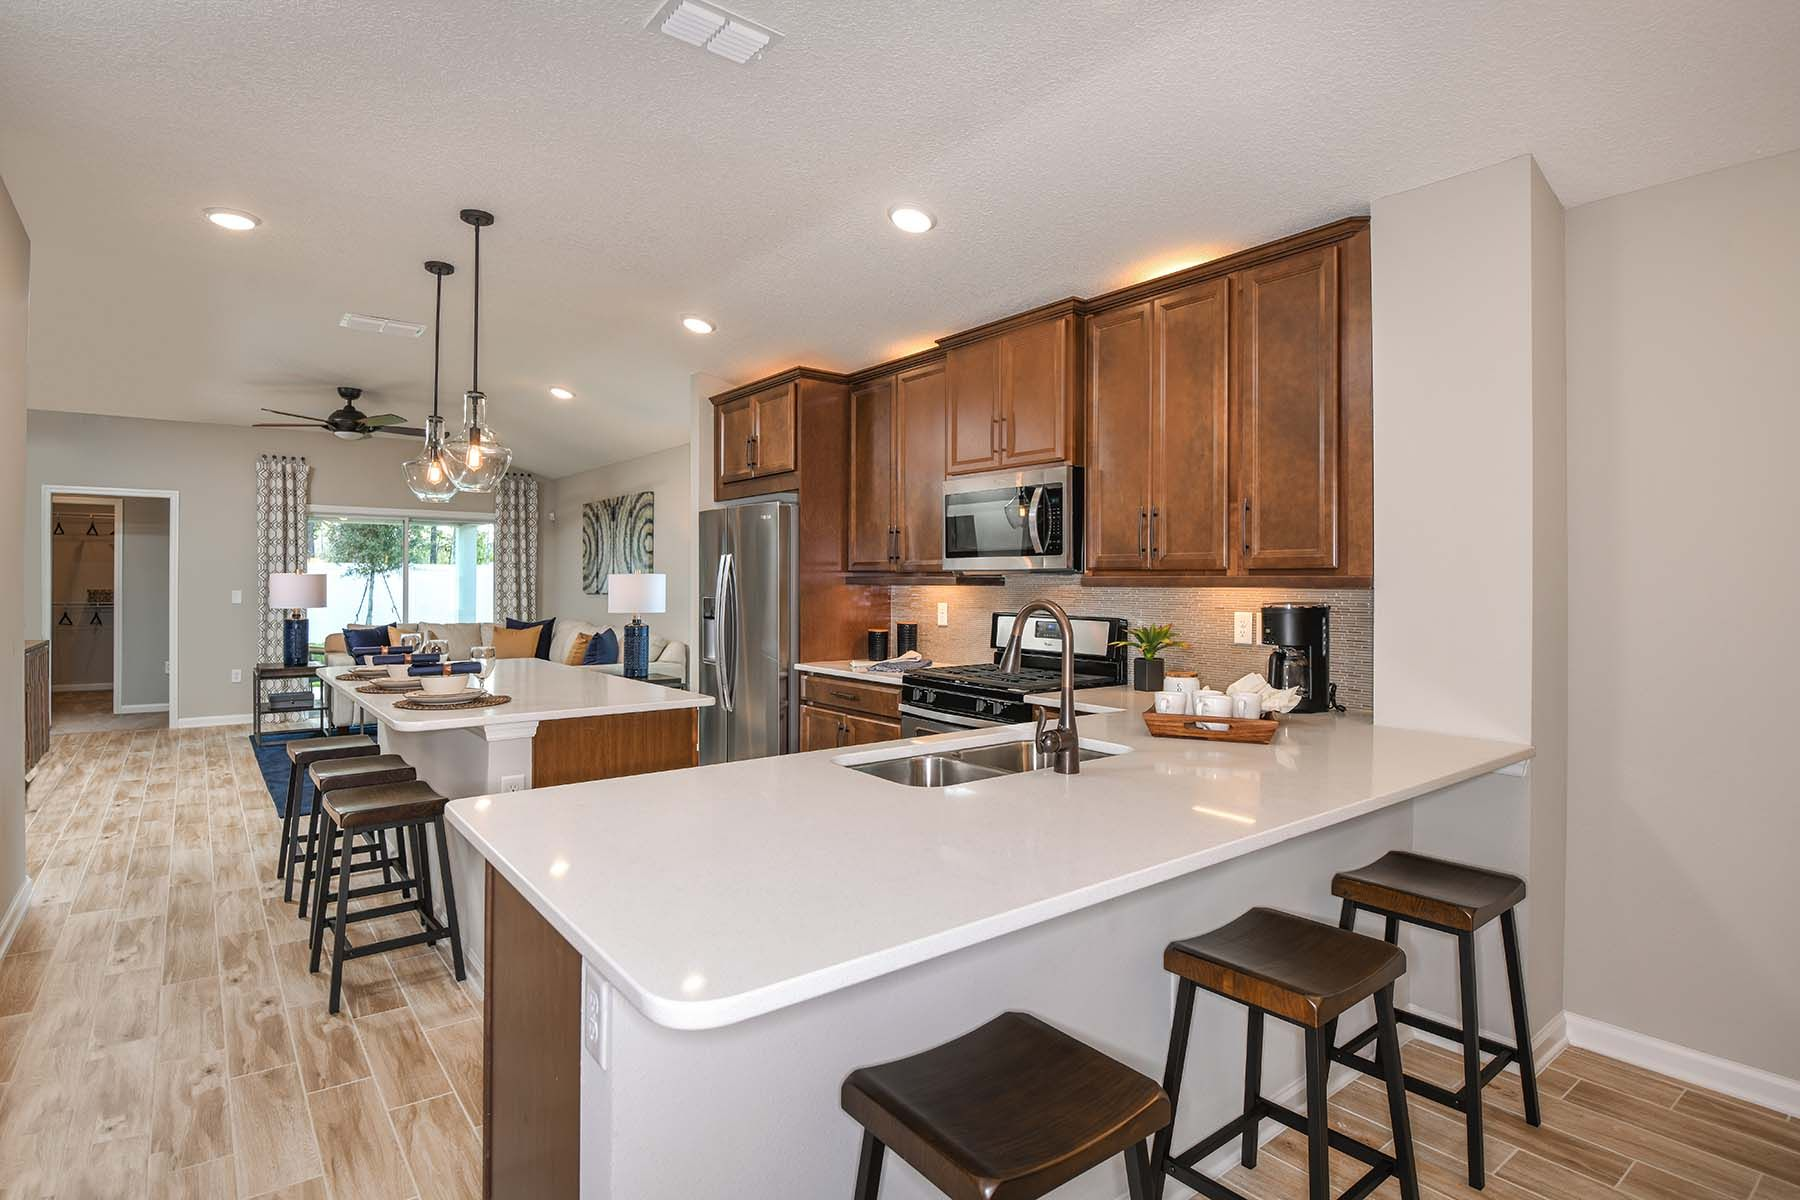 Kitchen featured in the Carrabelle By Mattamy Homes in Jacksonville-St. Augustine, FL